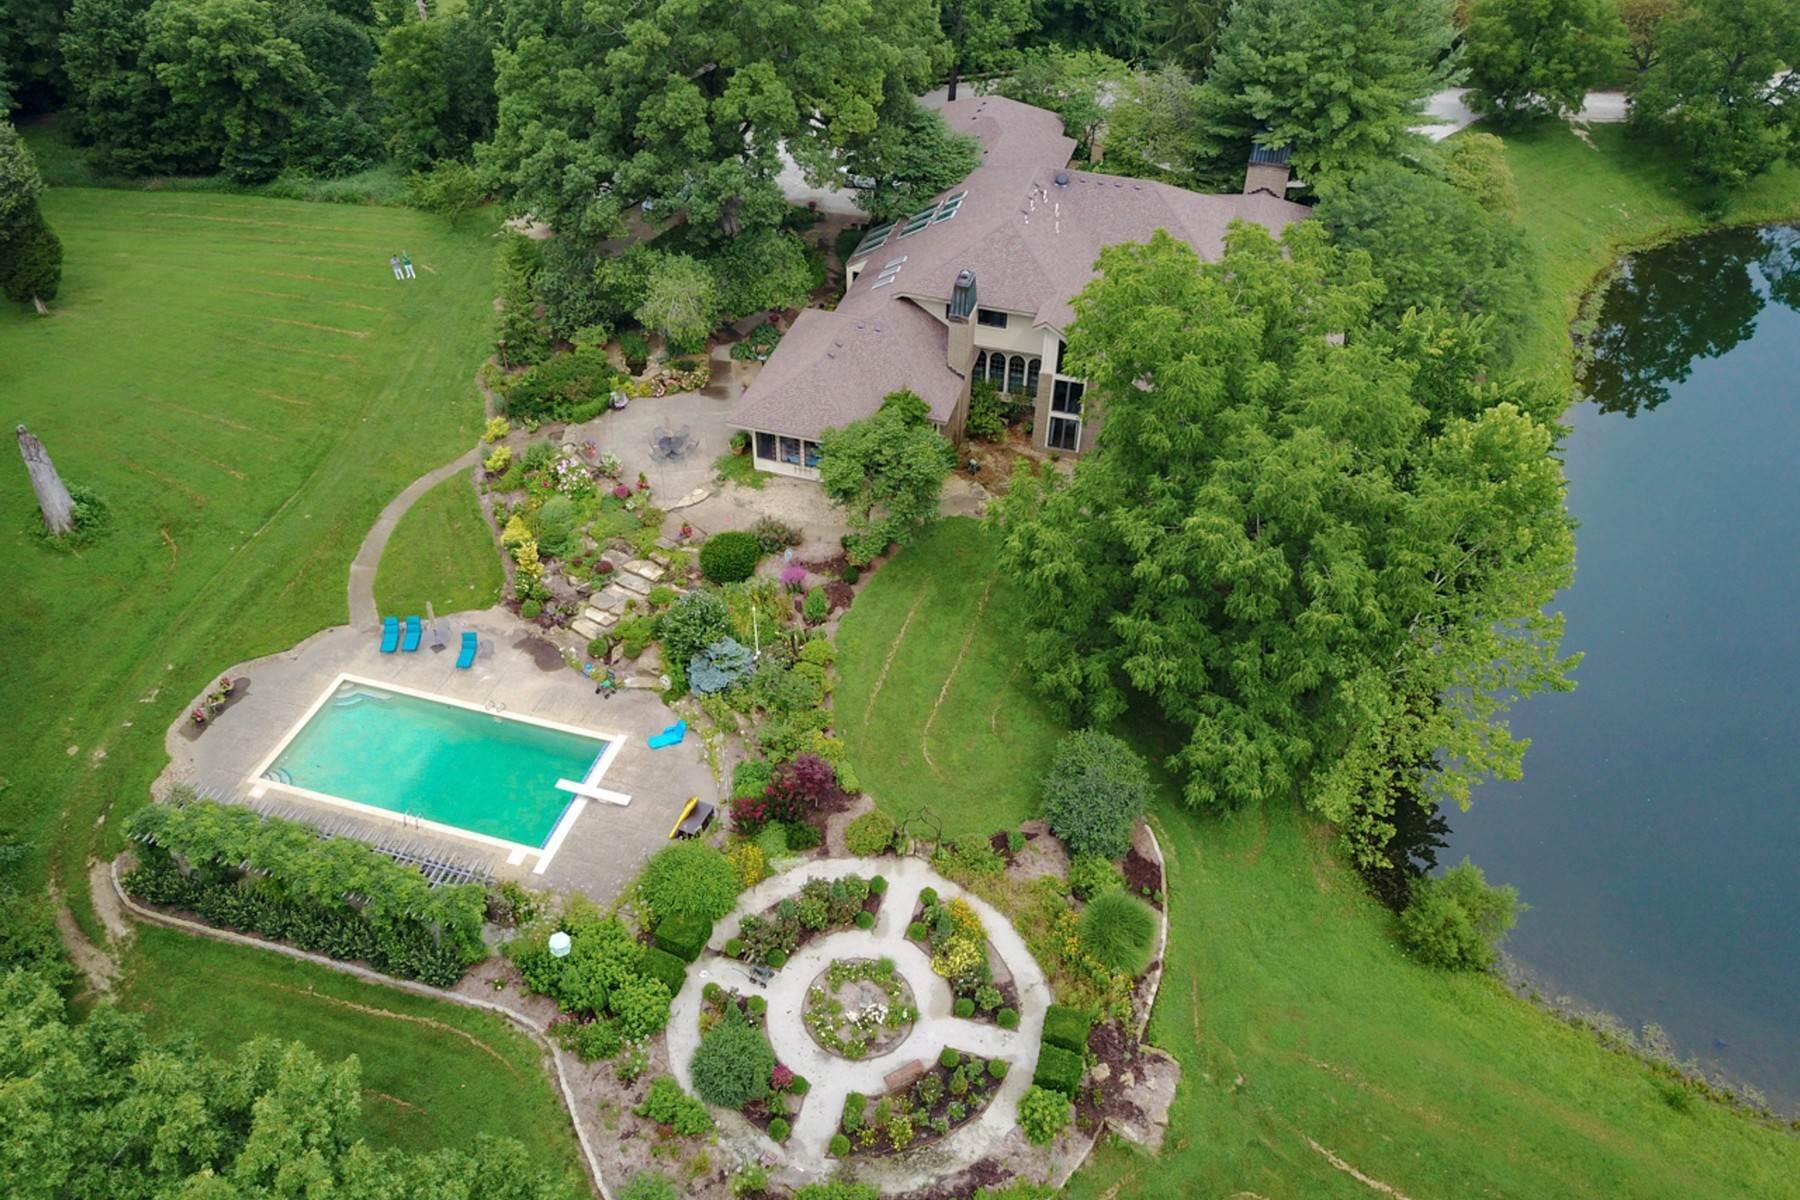 Single Family Homes for Sale at Scenic 60 Acre Equestrian Estate 2225 E Maple Turn Road Martinsville, Indiana 46151 United States